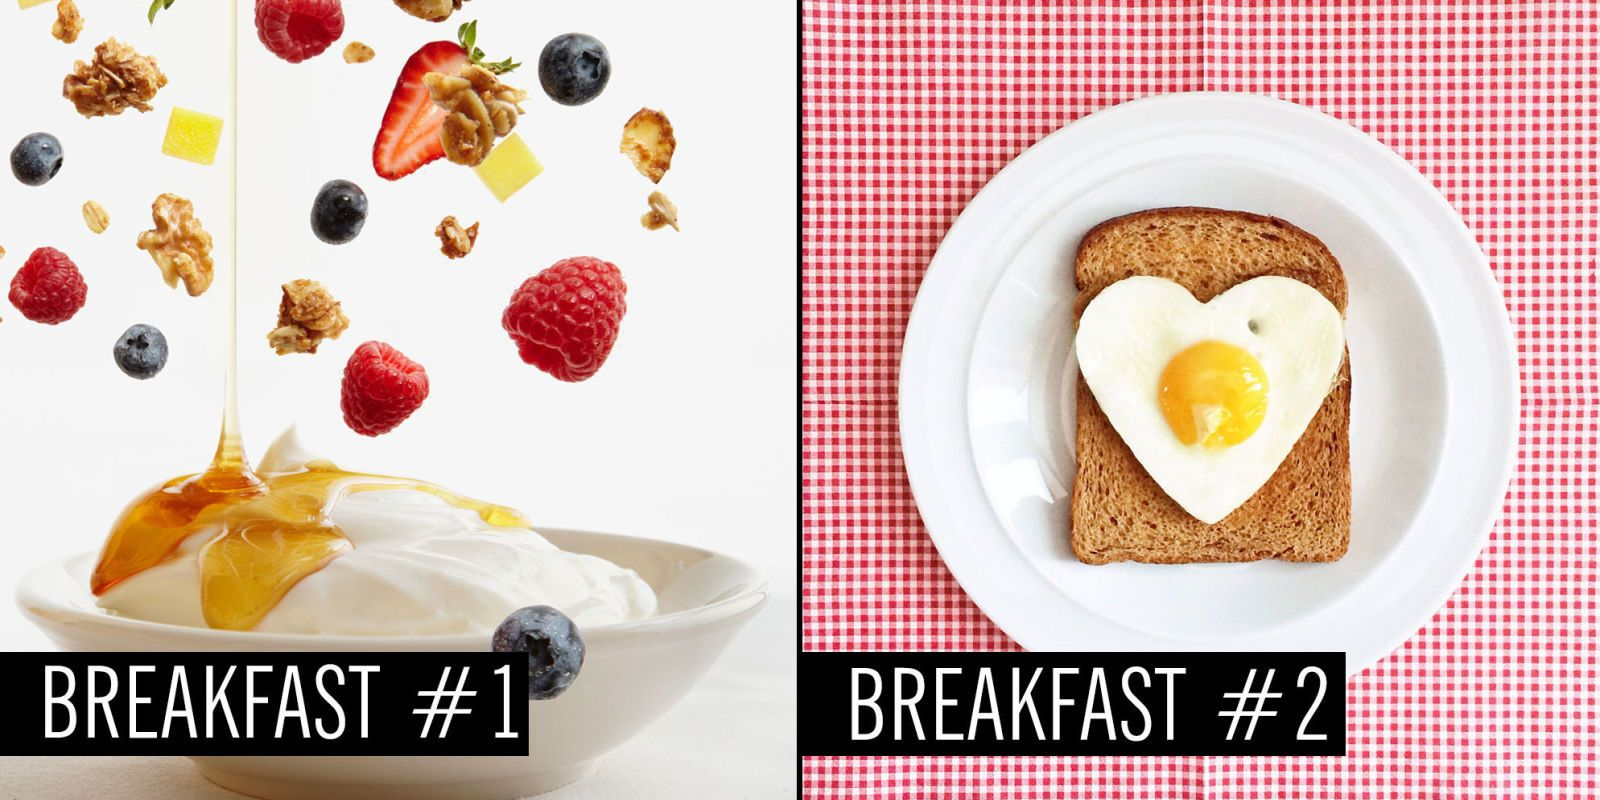 Skipping Breakfast Makes You Gain More Weight Than Eating Second Breakfast